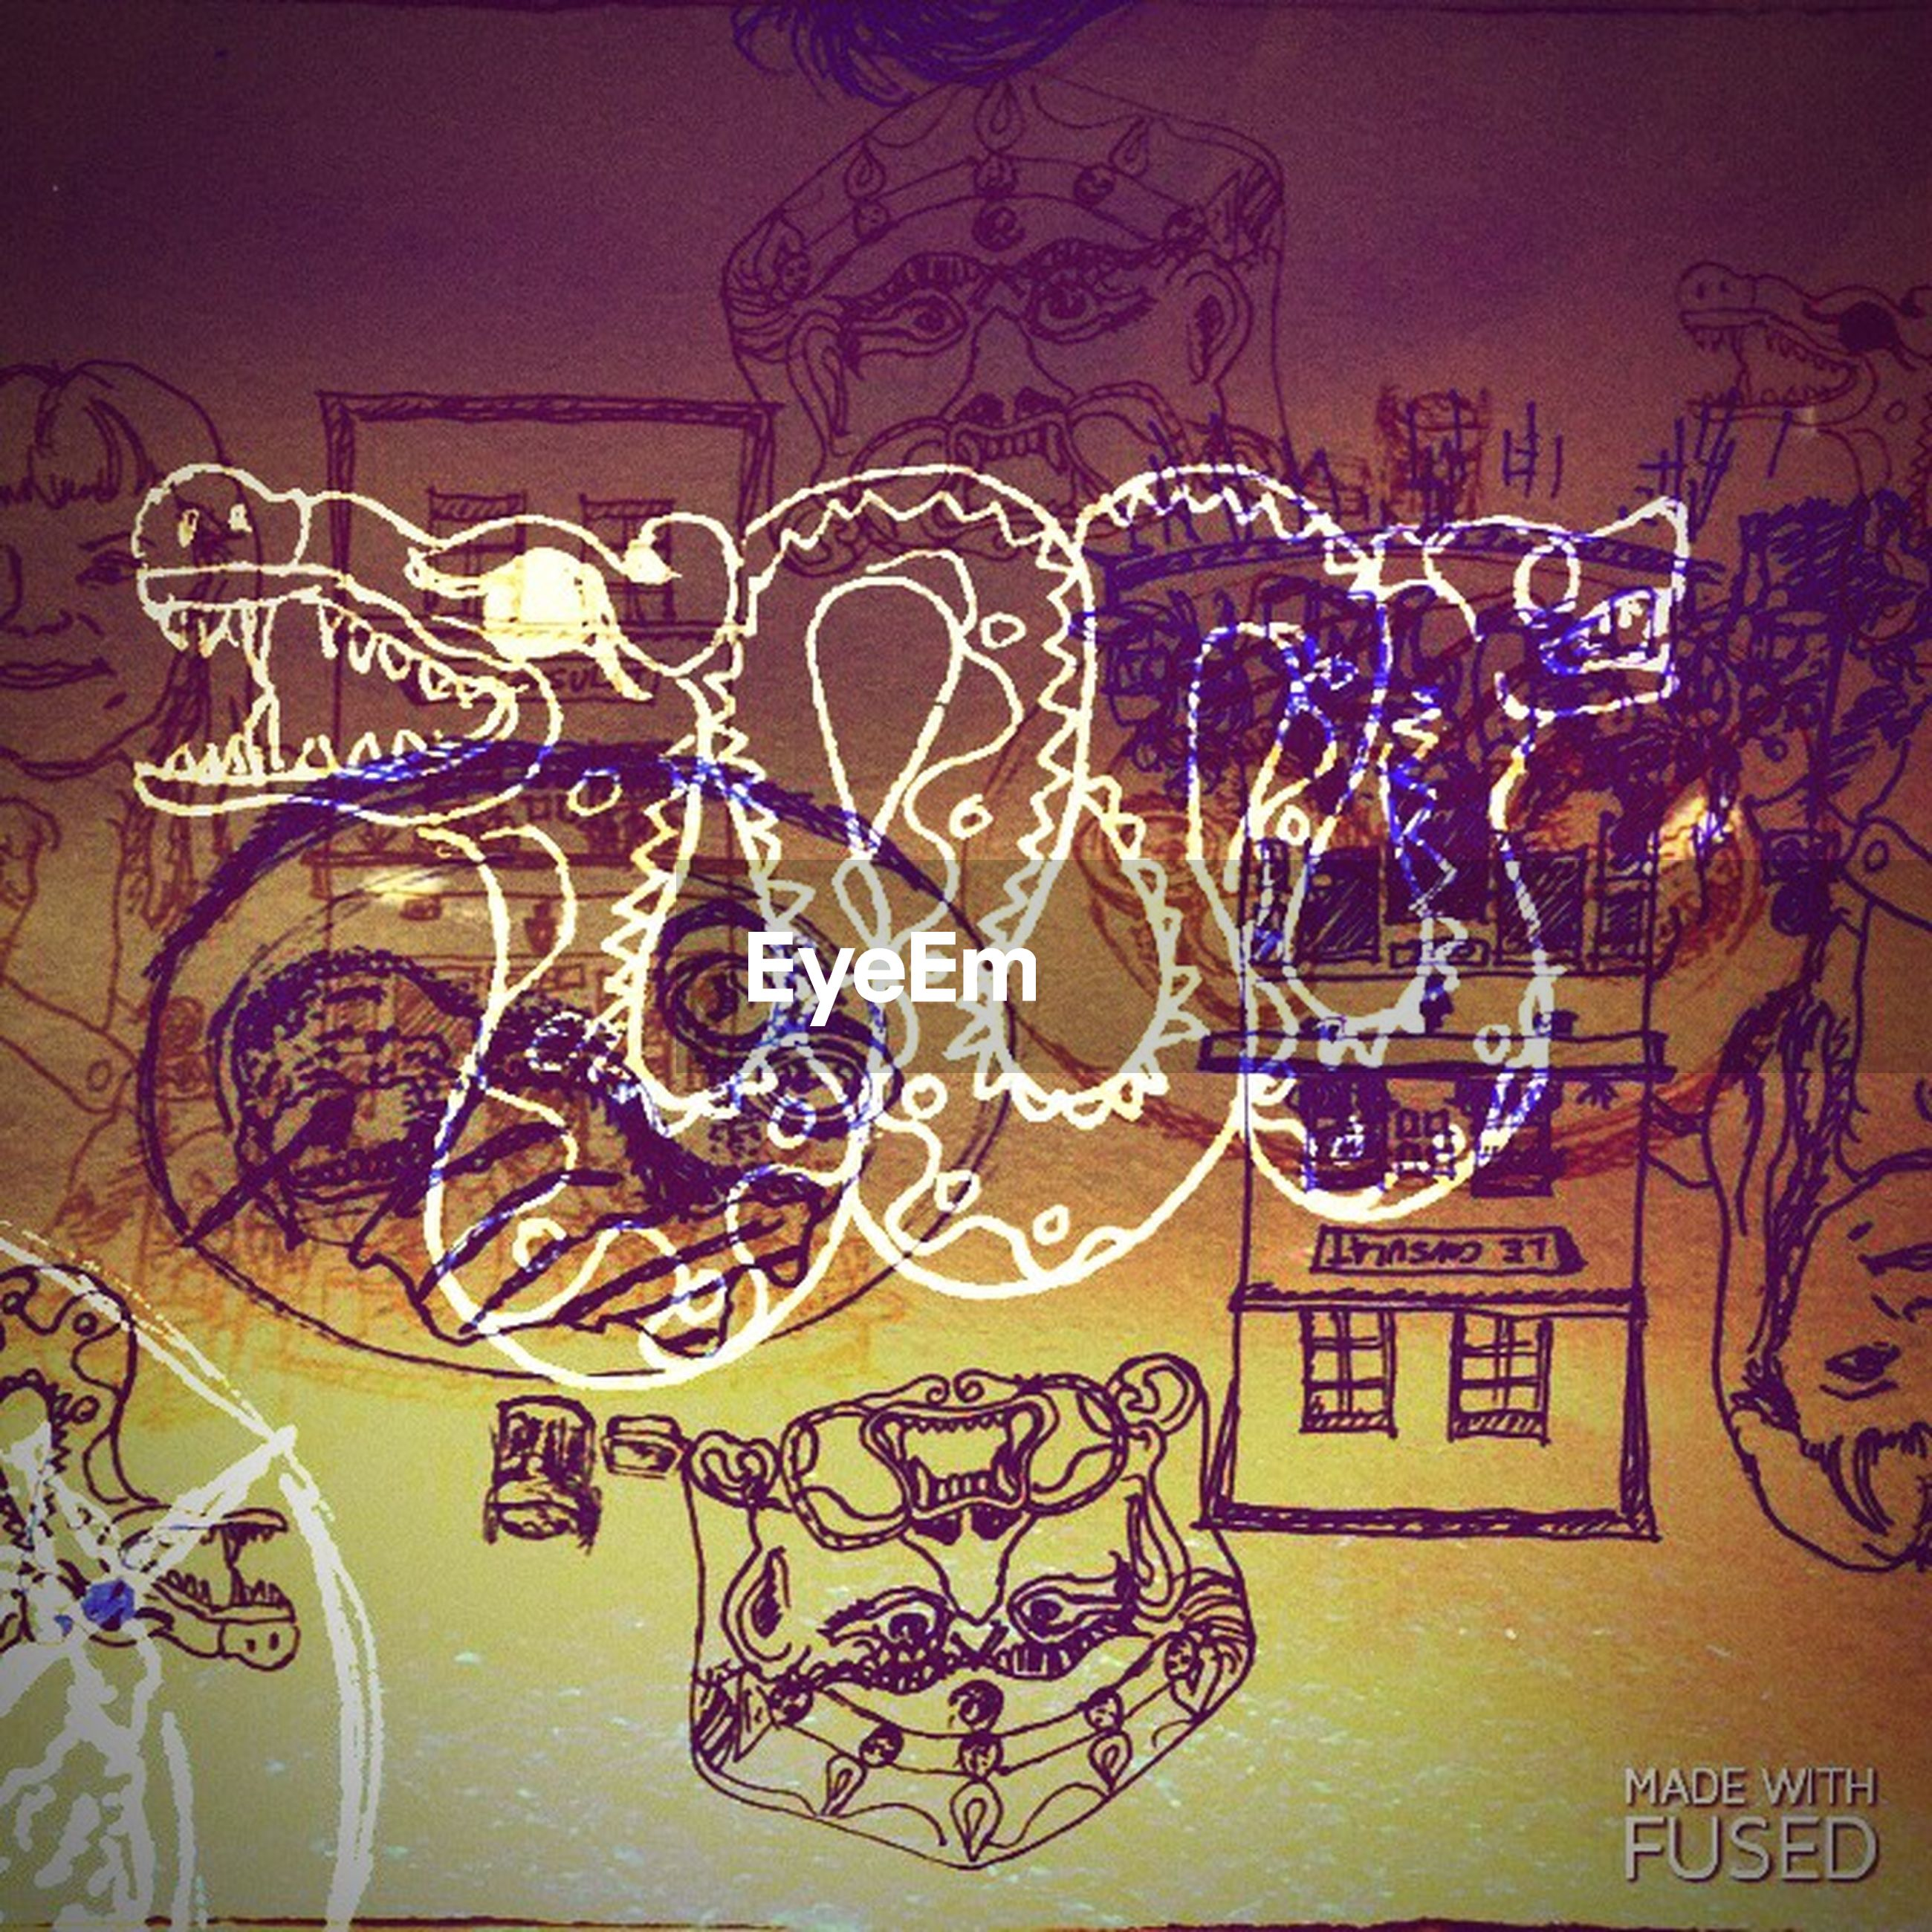 art, graffiti, creativity, art and craft, text, wall - building feature, multi colored, western script, indoors, built structure, communication, architecture, design, pattern, wall, human representation, street art, no people, animal representation, mural